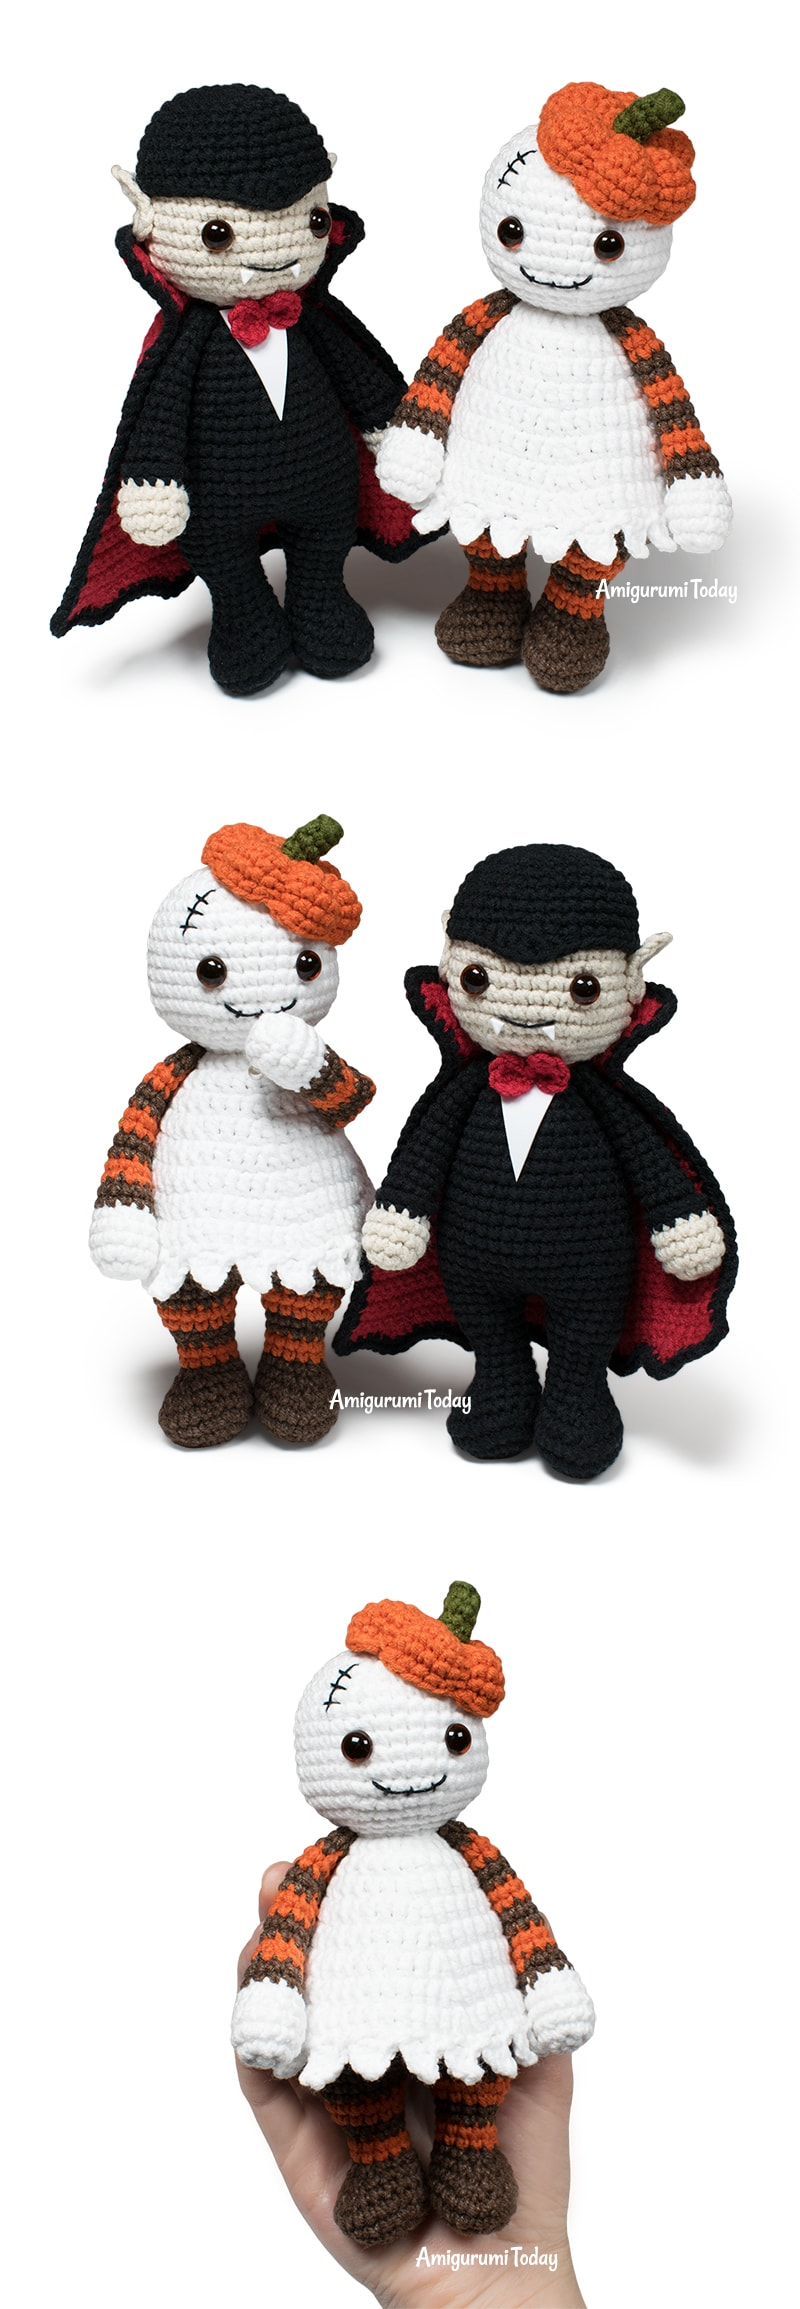 Amigurumi ghost & vampire - Free Halloween crochet patterns by Amigurumi Today